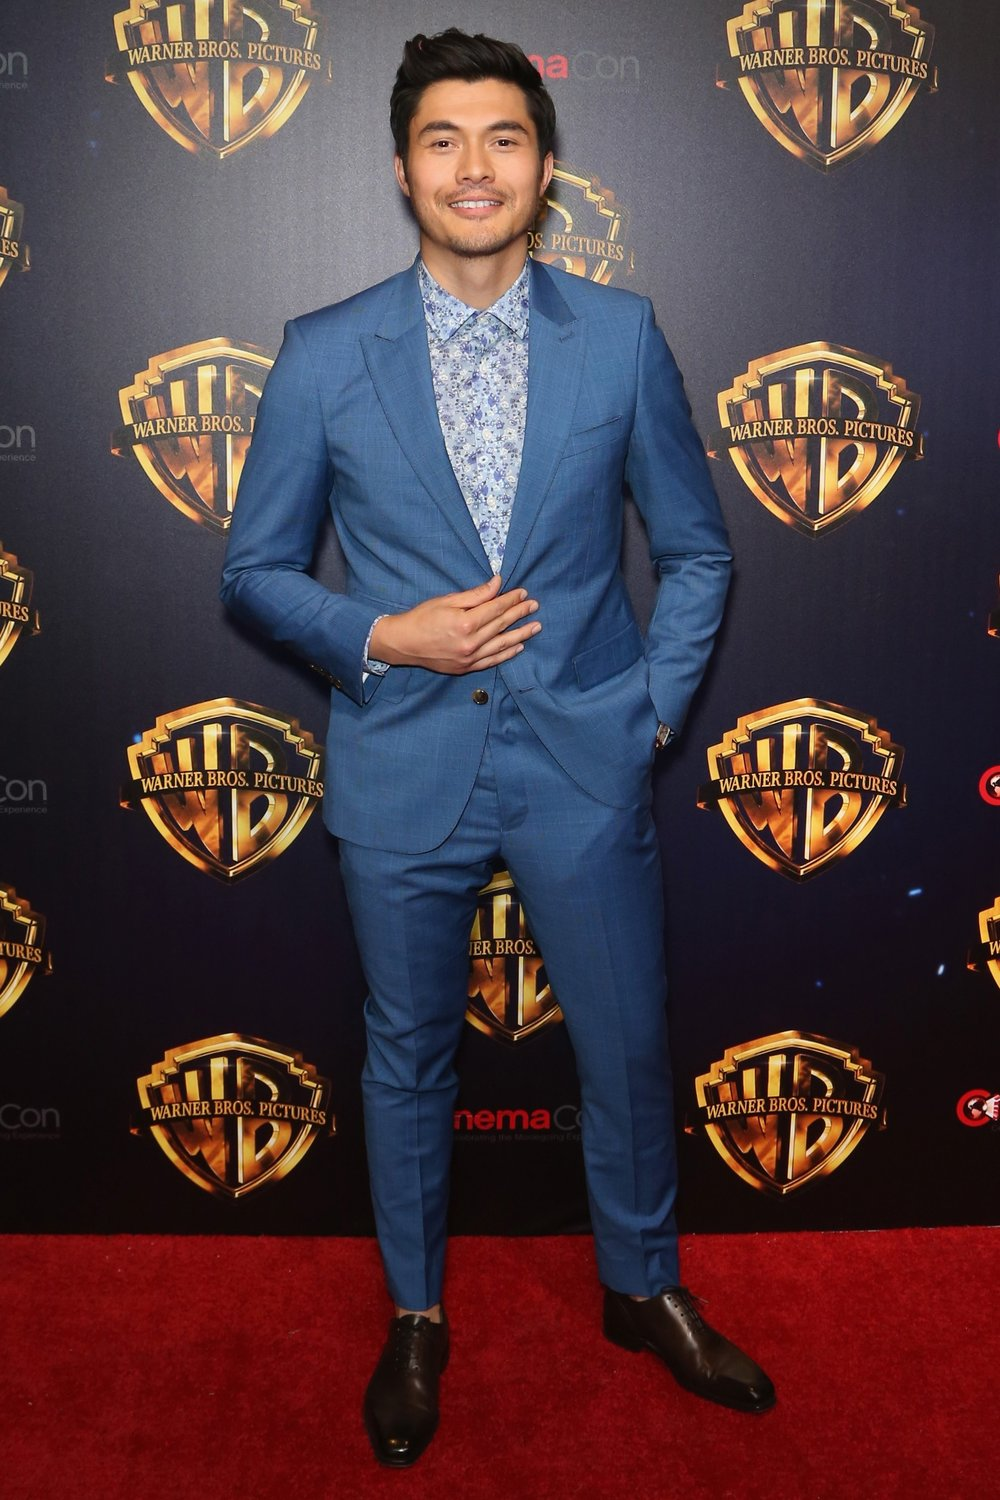 10-best-dressed-4-23-18-henry-golding-2.jpg